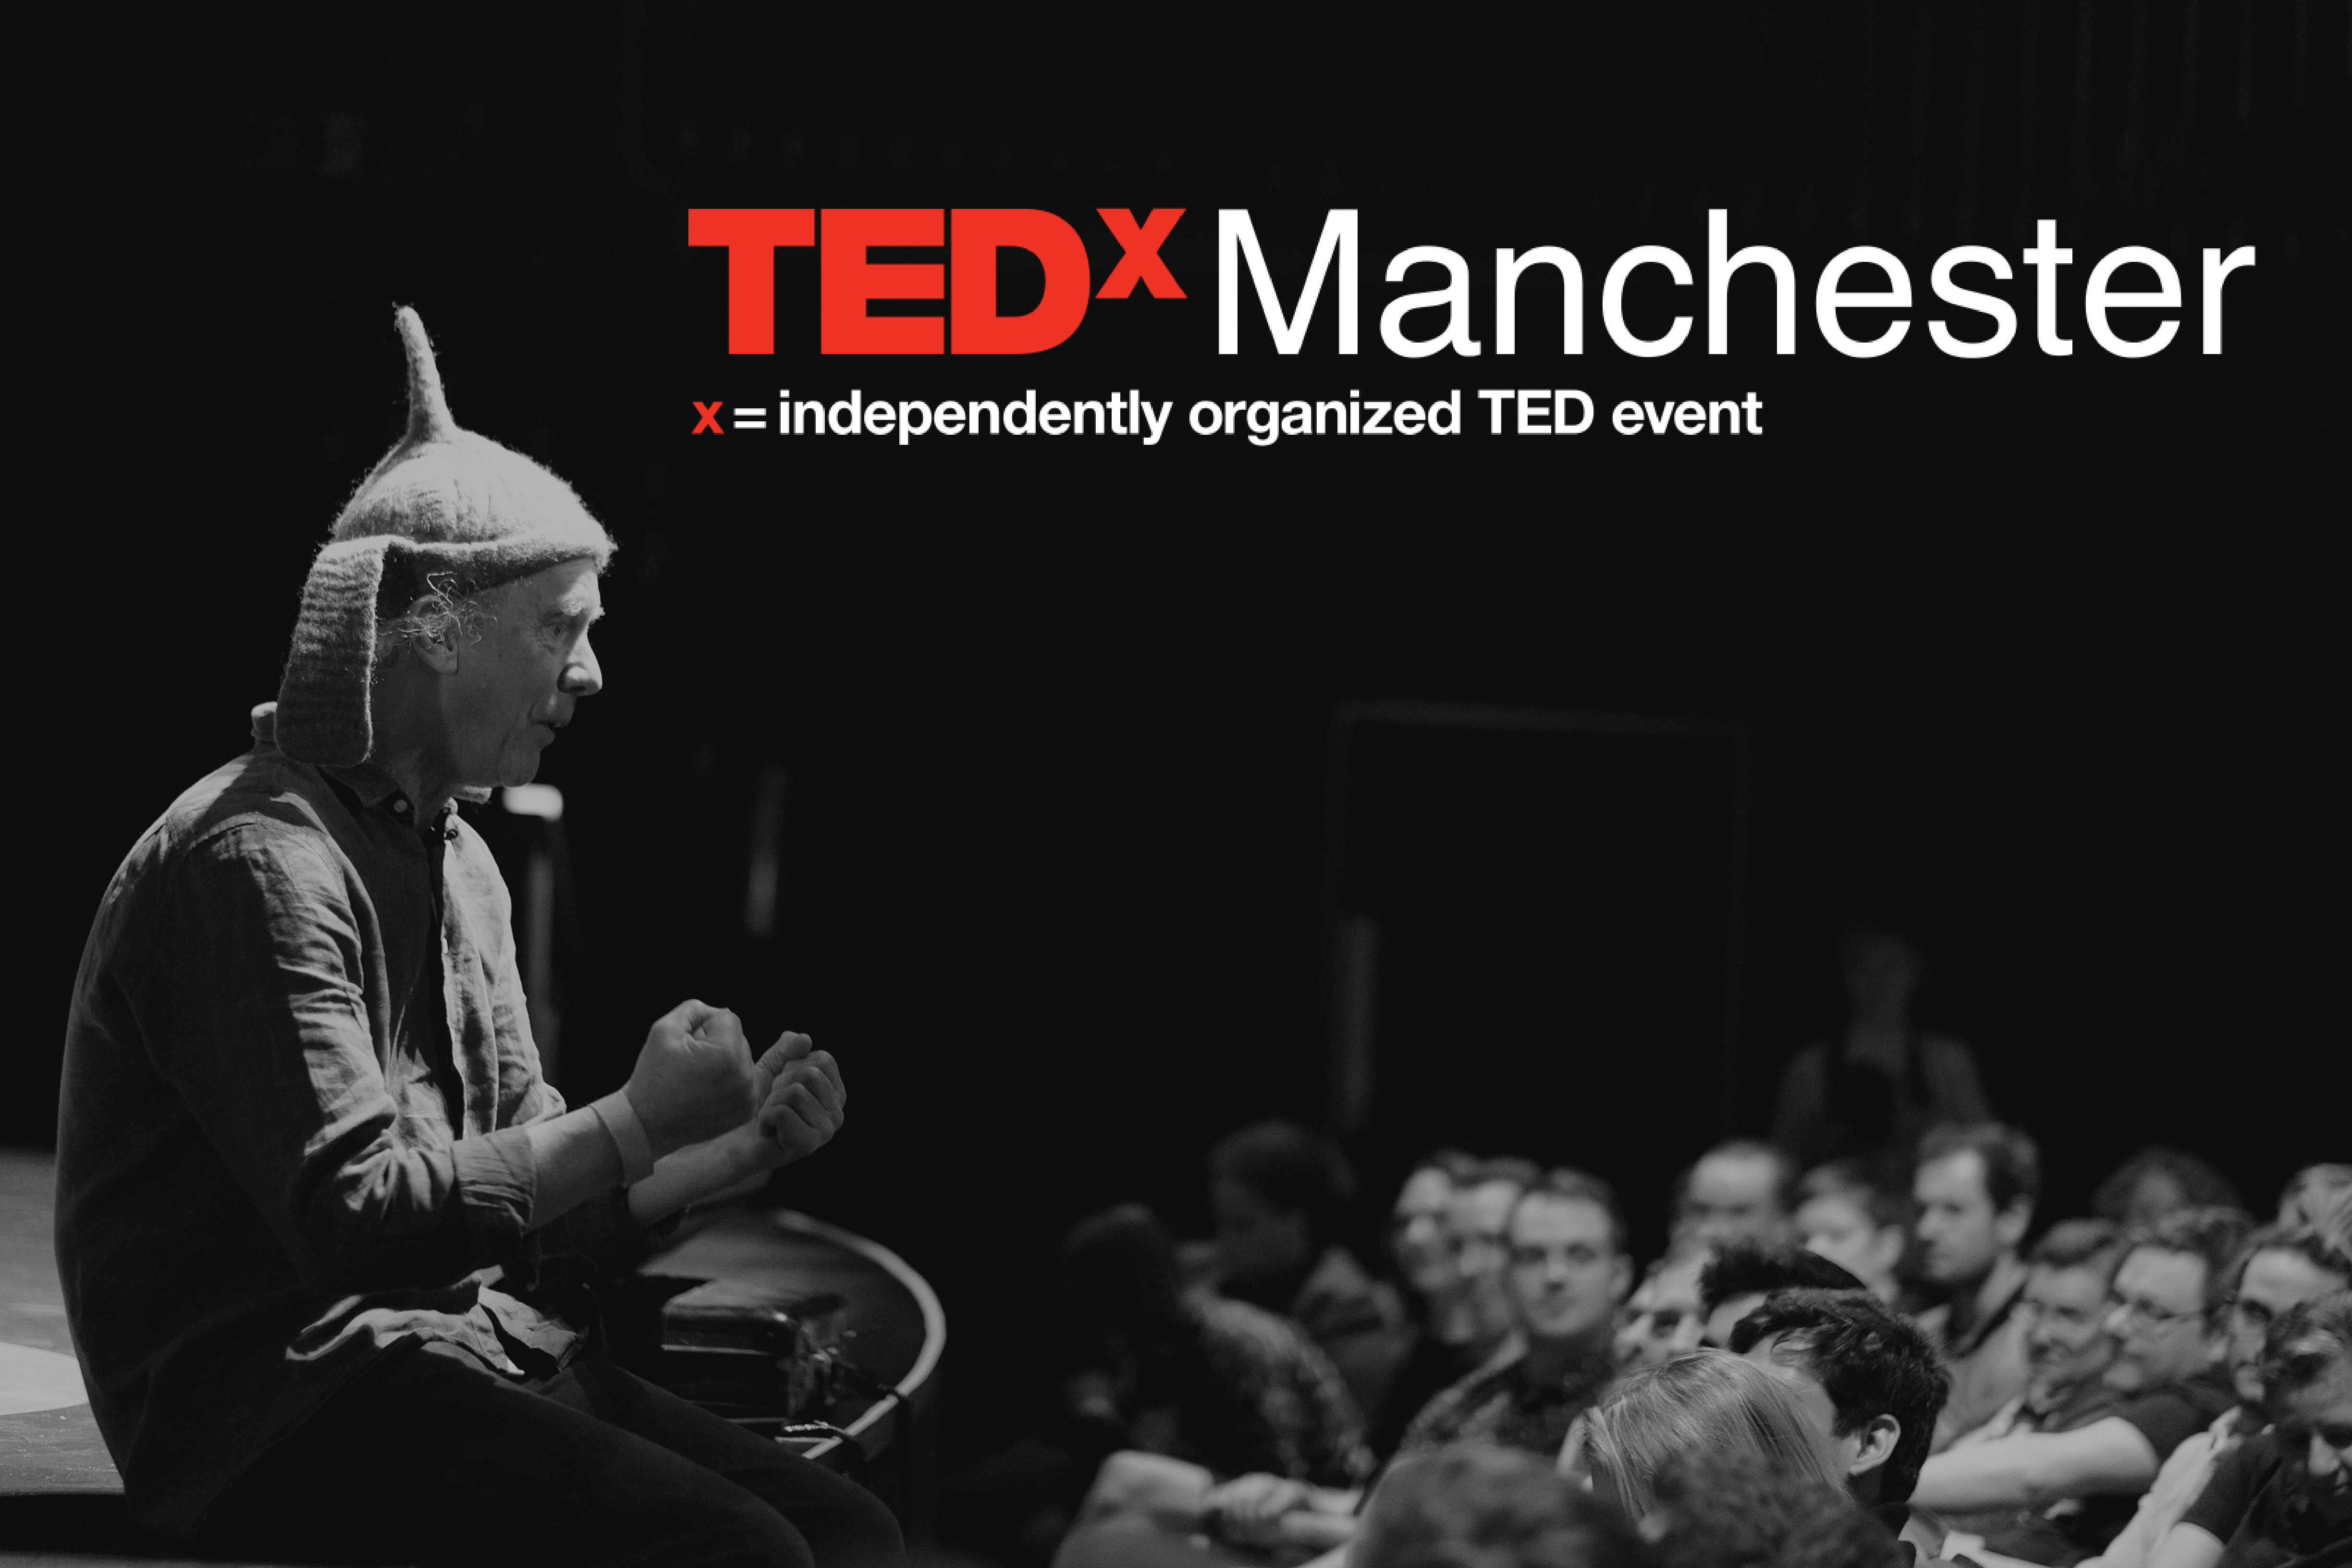 TEDxManchester – independently organised TED event